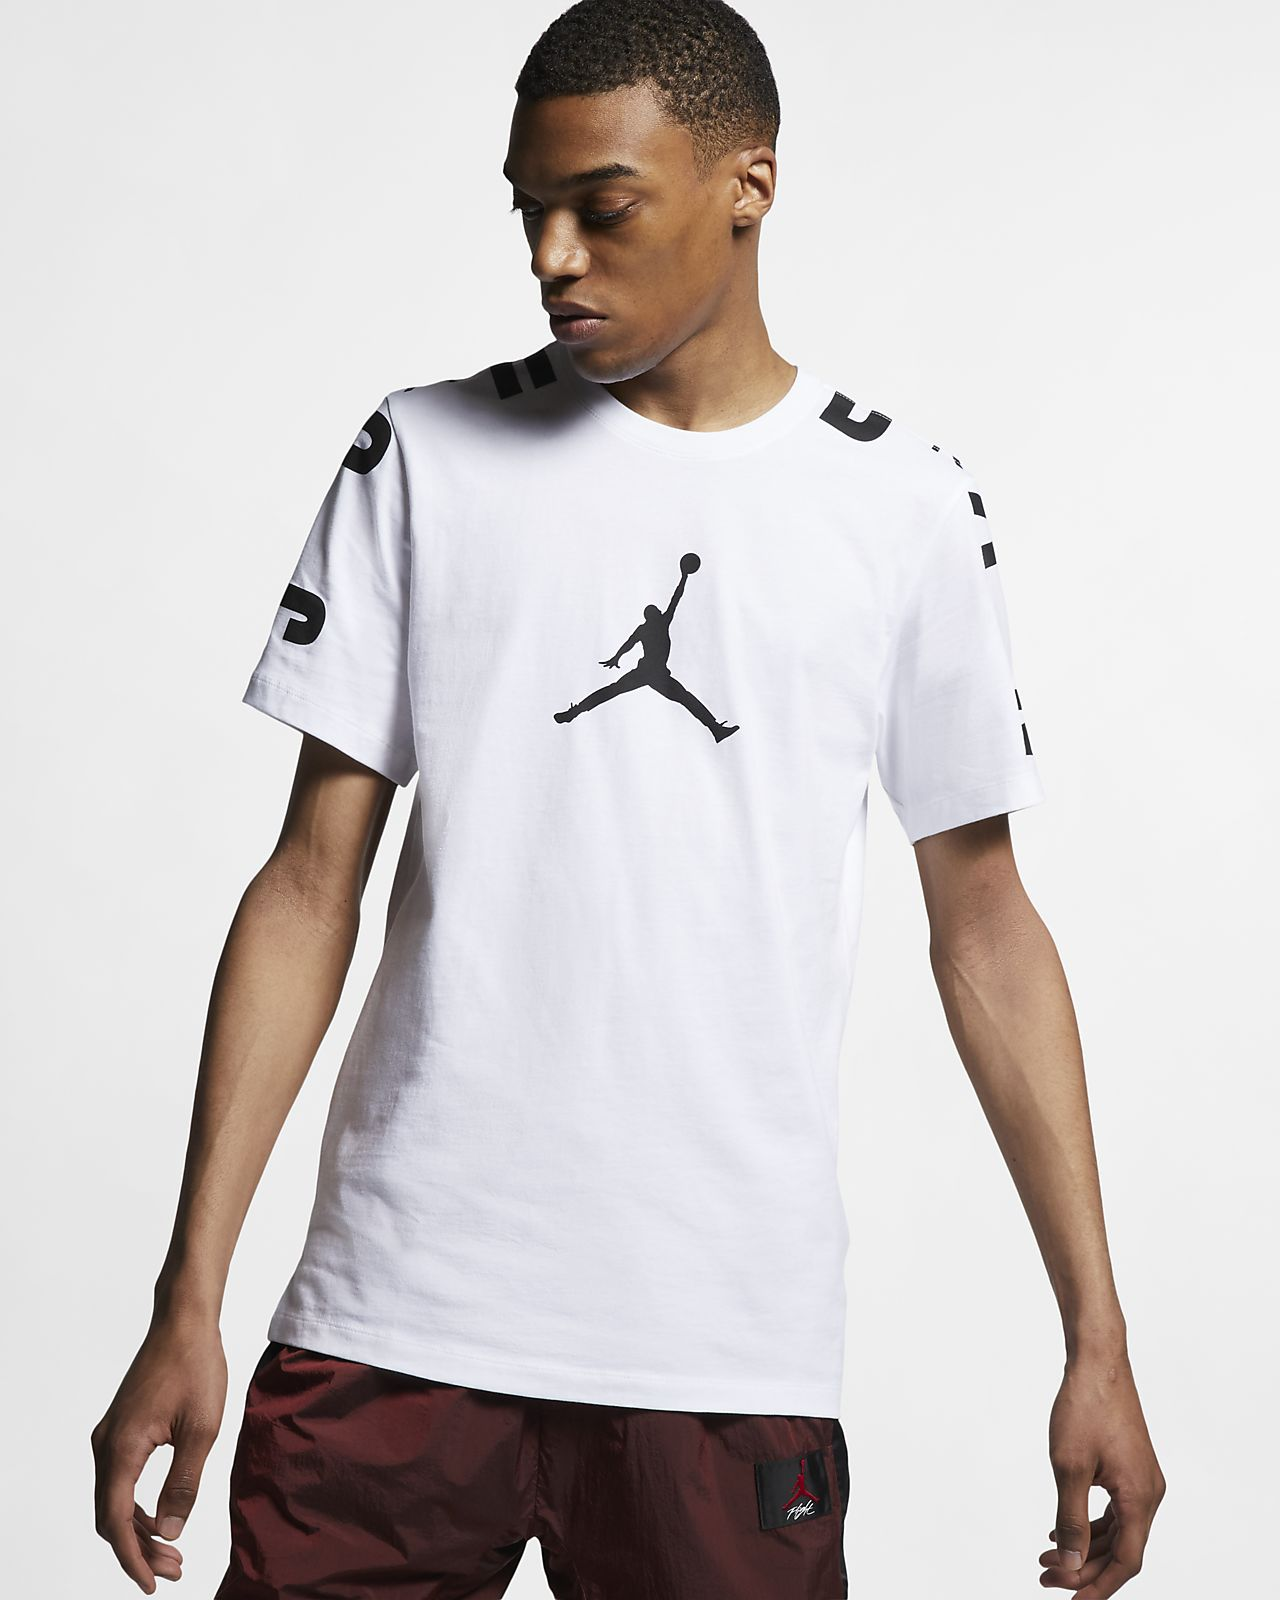 Jordan Stretch 23 Herren-T-Shirt